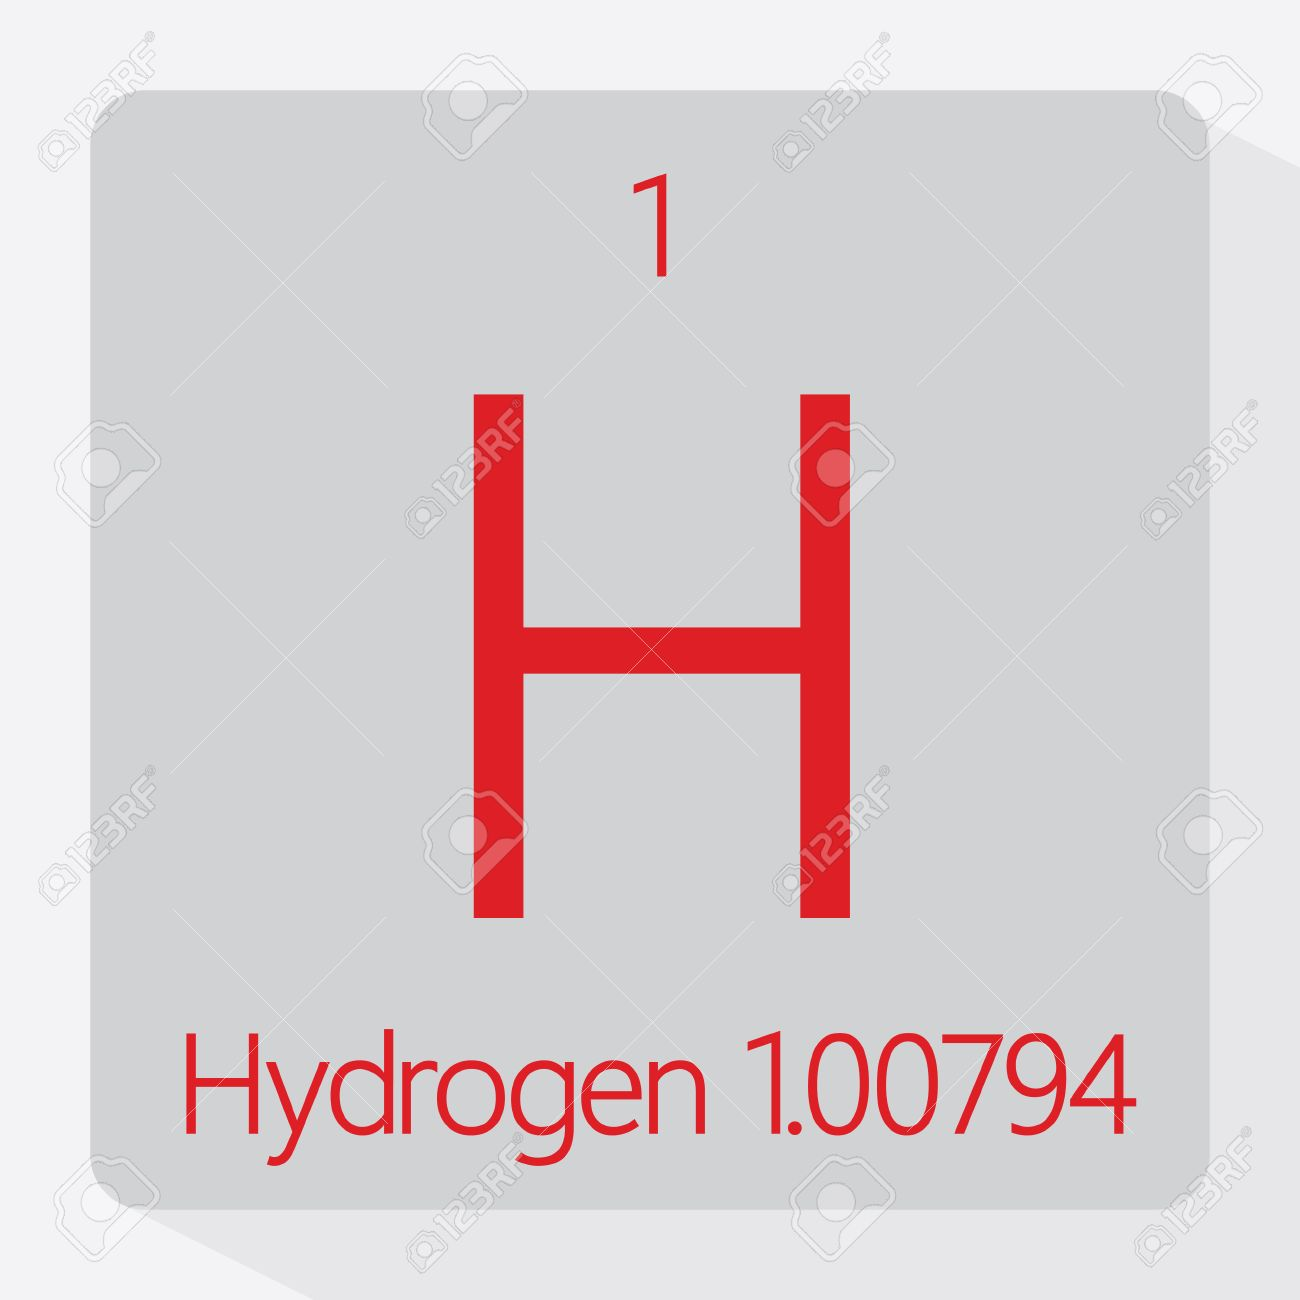 Periodic table hydrogen royalty free cliparts vectors and stock periodic table hydrogen stock vector 41368759 urtaz Gallery